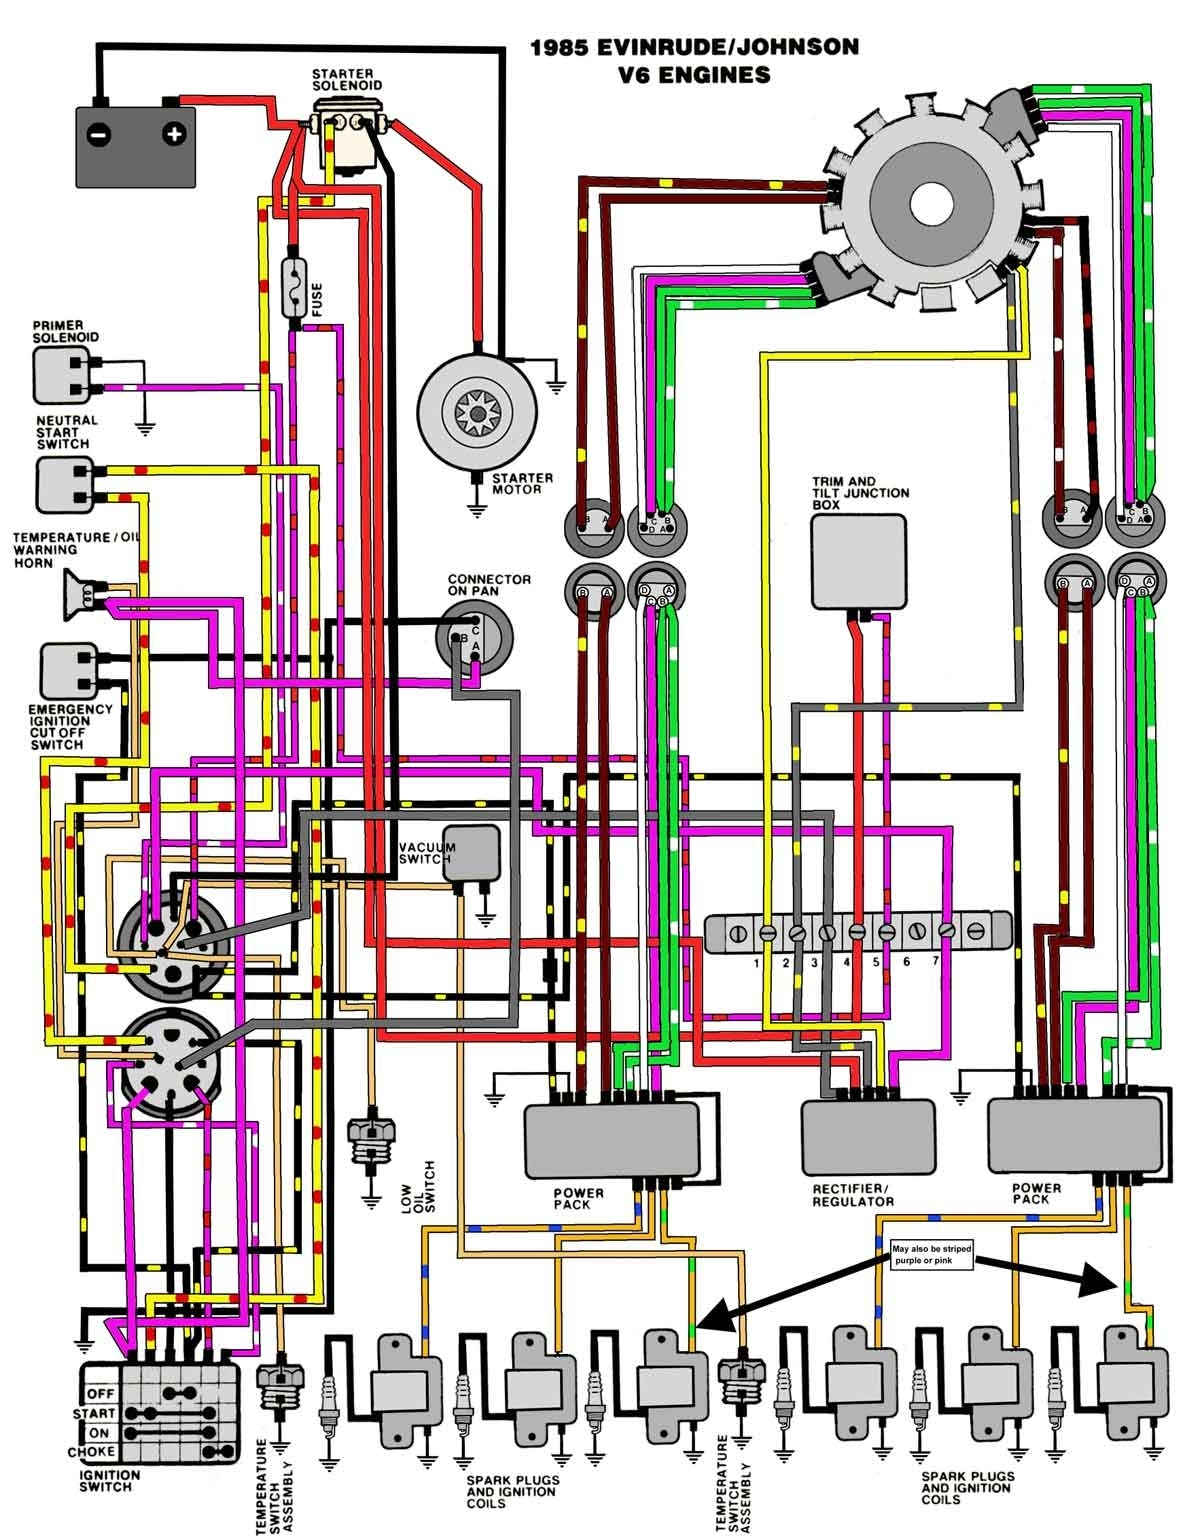 [SCHEMATICS_4JK]  5D0191 Evinrude 115 Wiring Diagram Free Picture Schematic | Wiring Library | 115 Johnson Trim Motor Wiring Diagram |  | Wiring Library